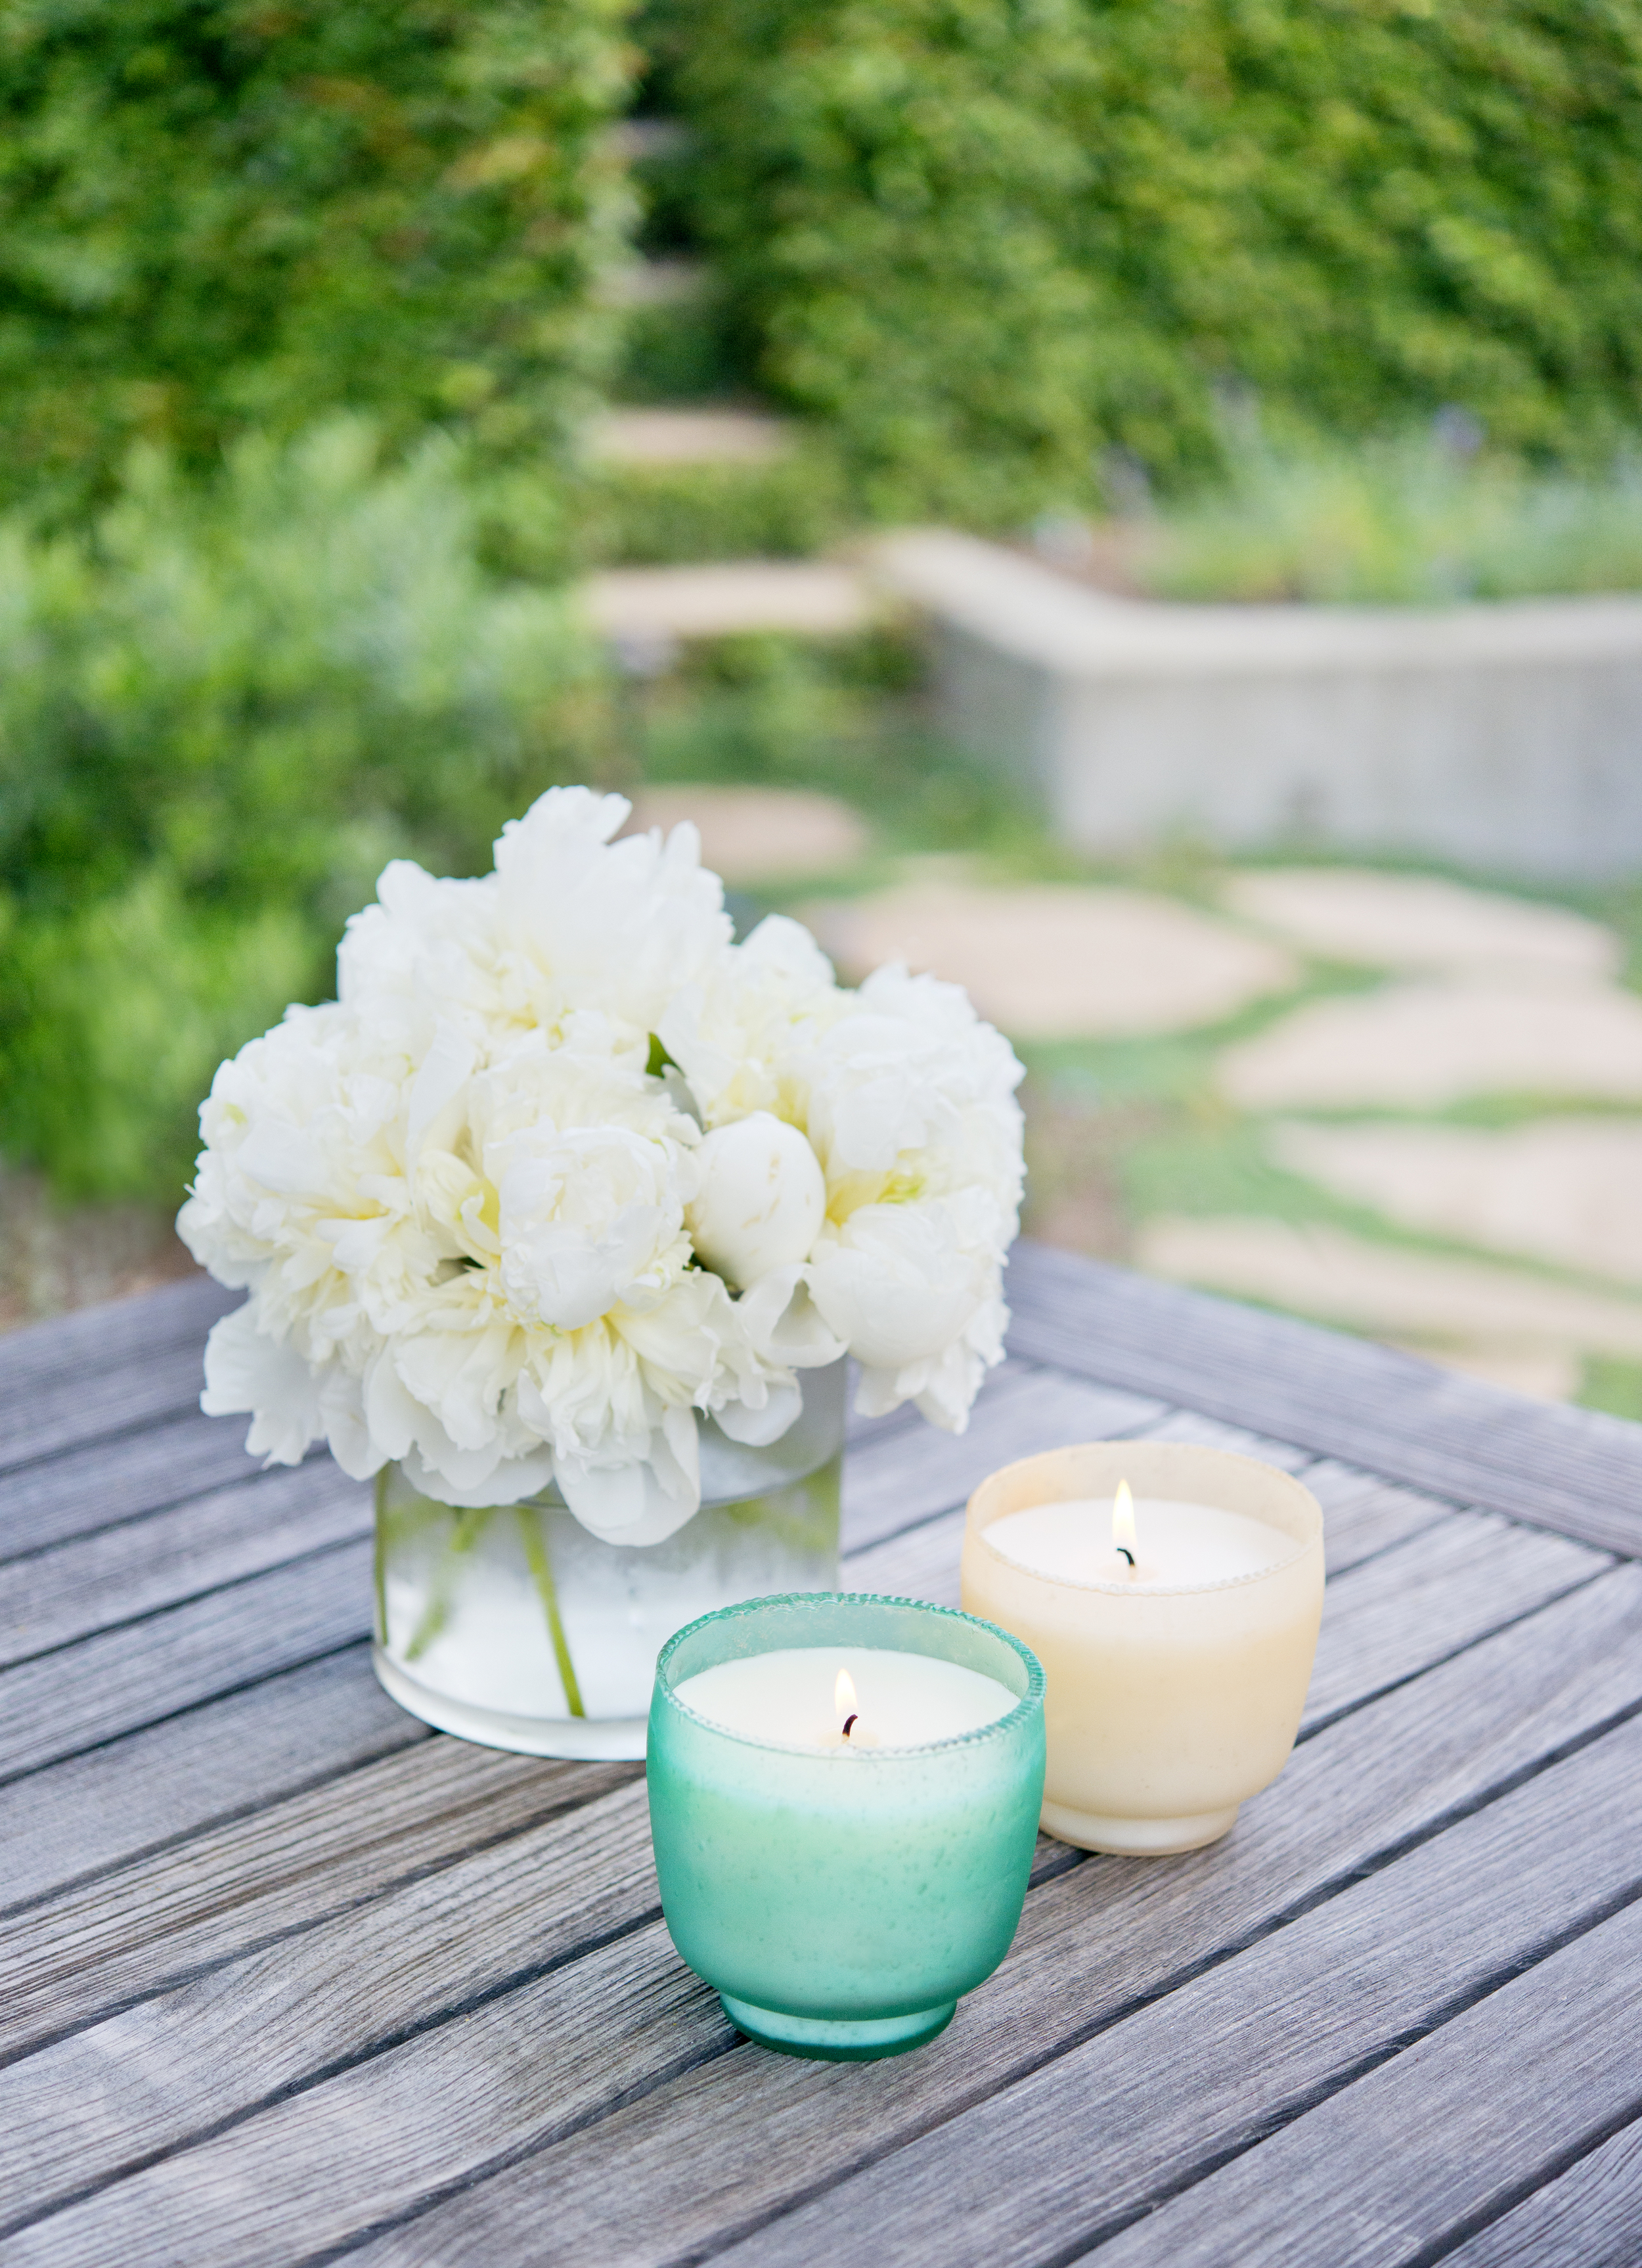 The Tidepool Candle Collection from Northern Lights Candles